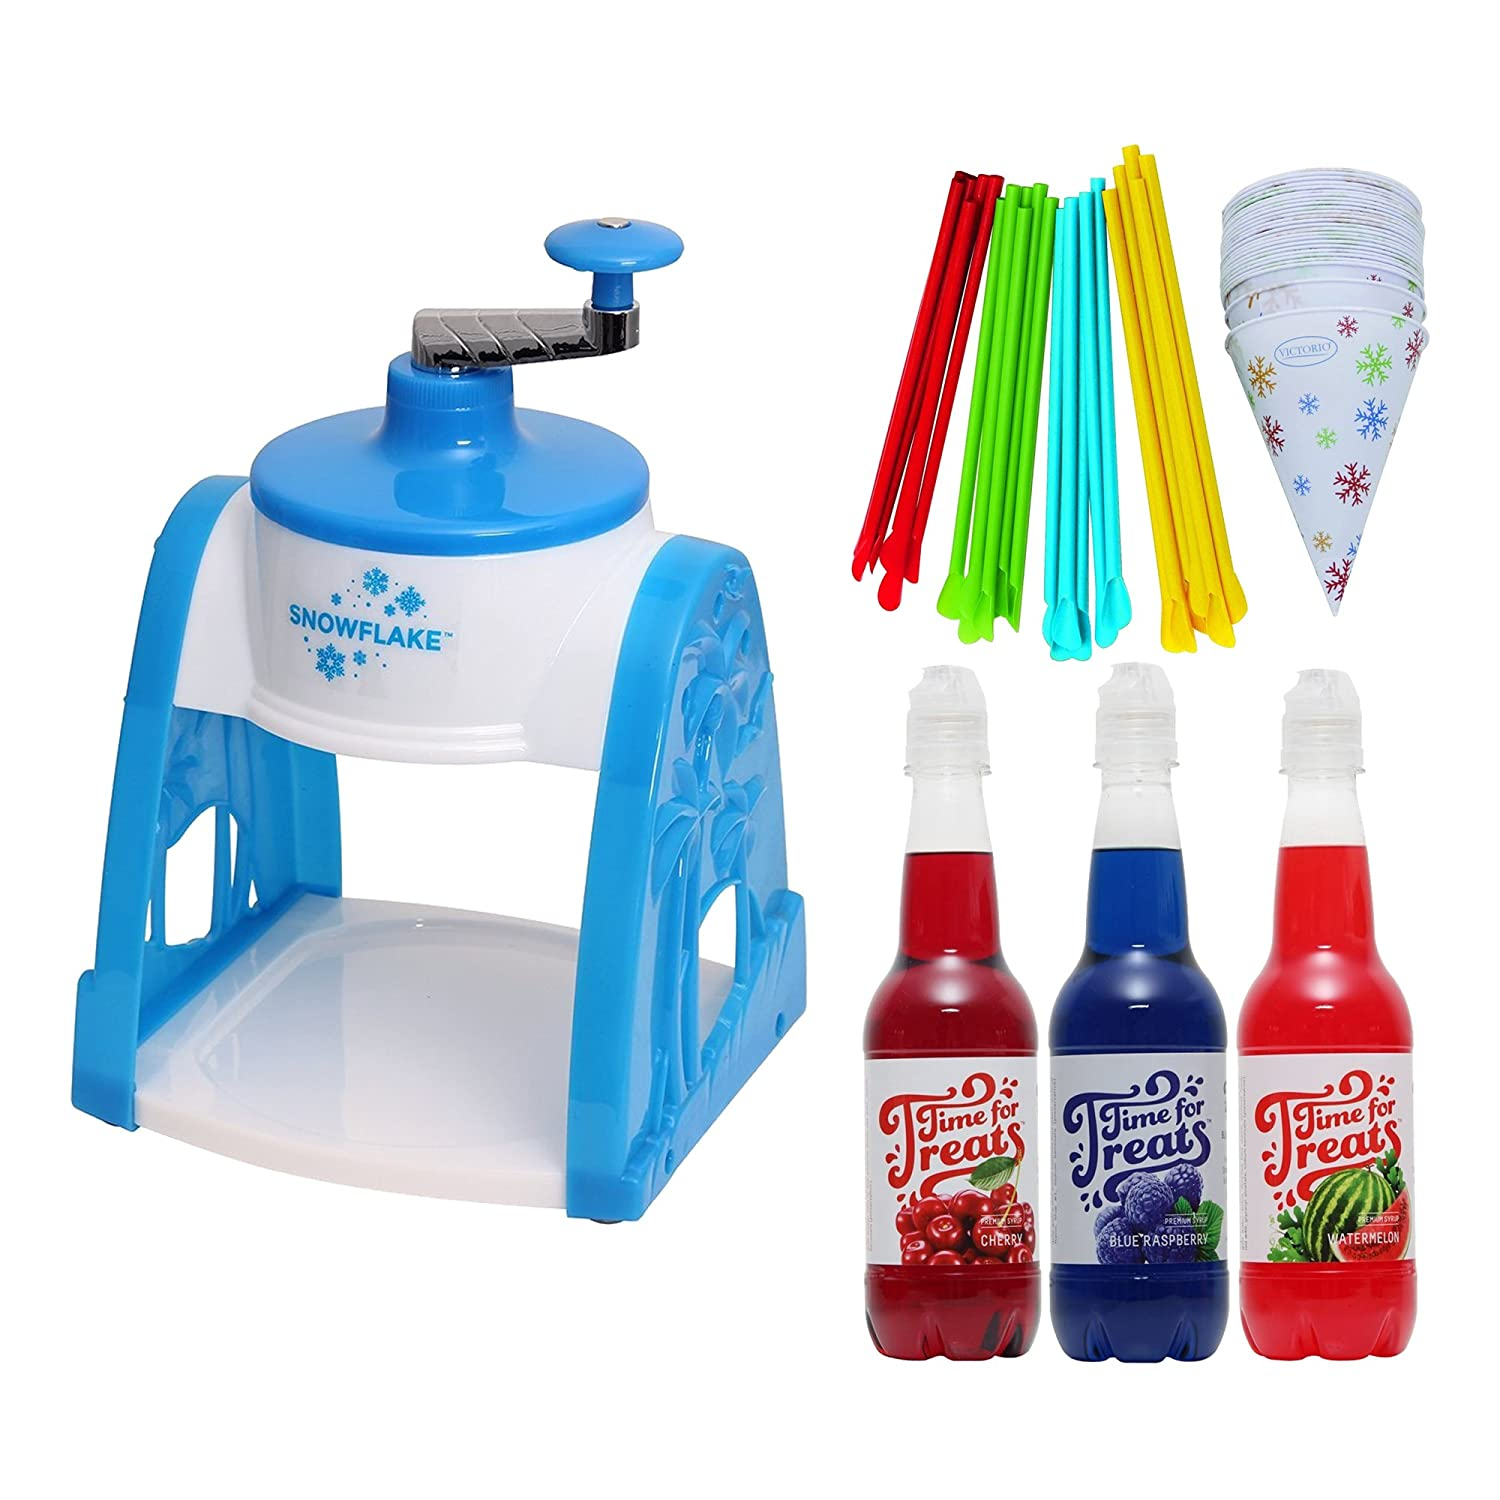 Victorio Time for Treats Manual Snow Cone Maker + Spoon Straws & Cups 25-Pack + Snow Cone Syrup 3-Pack WhoIsCamera